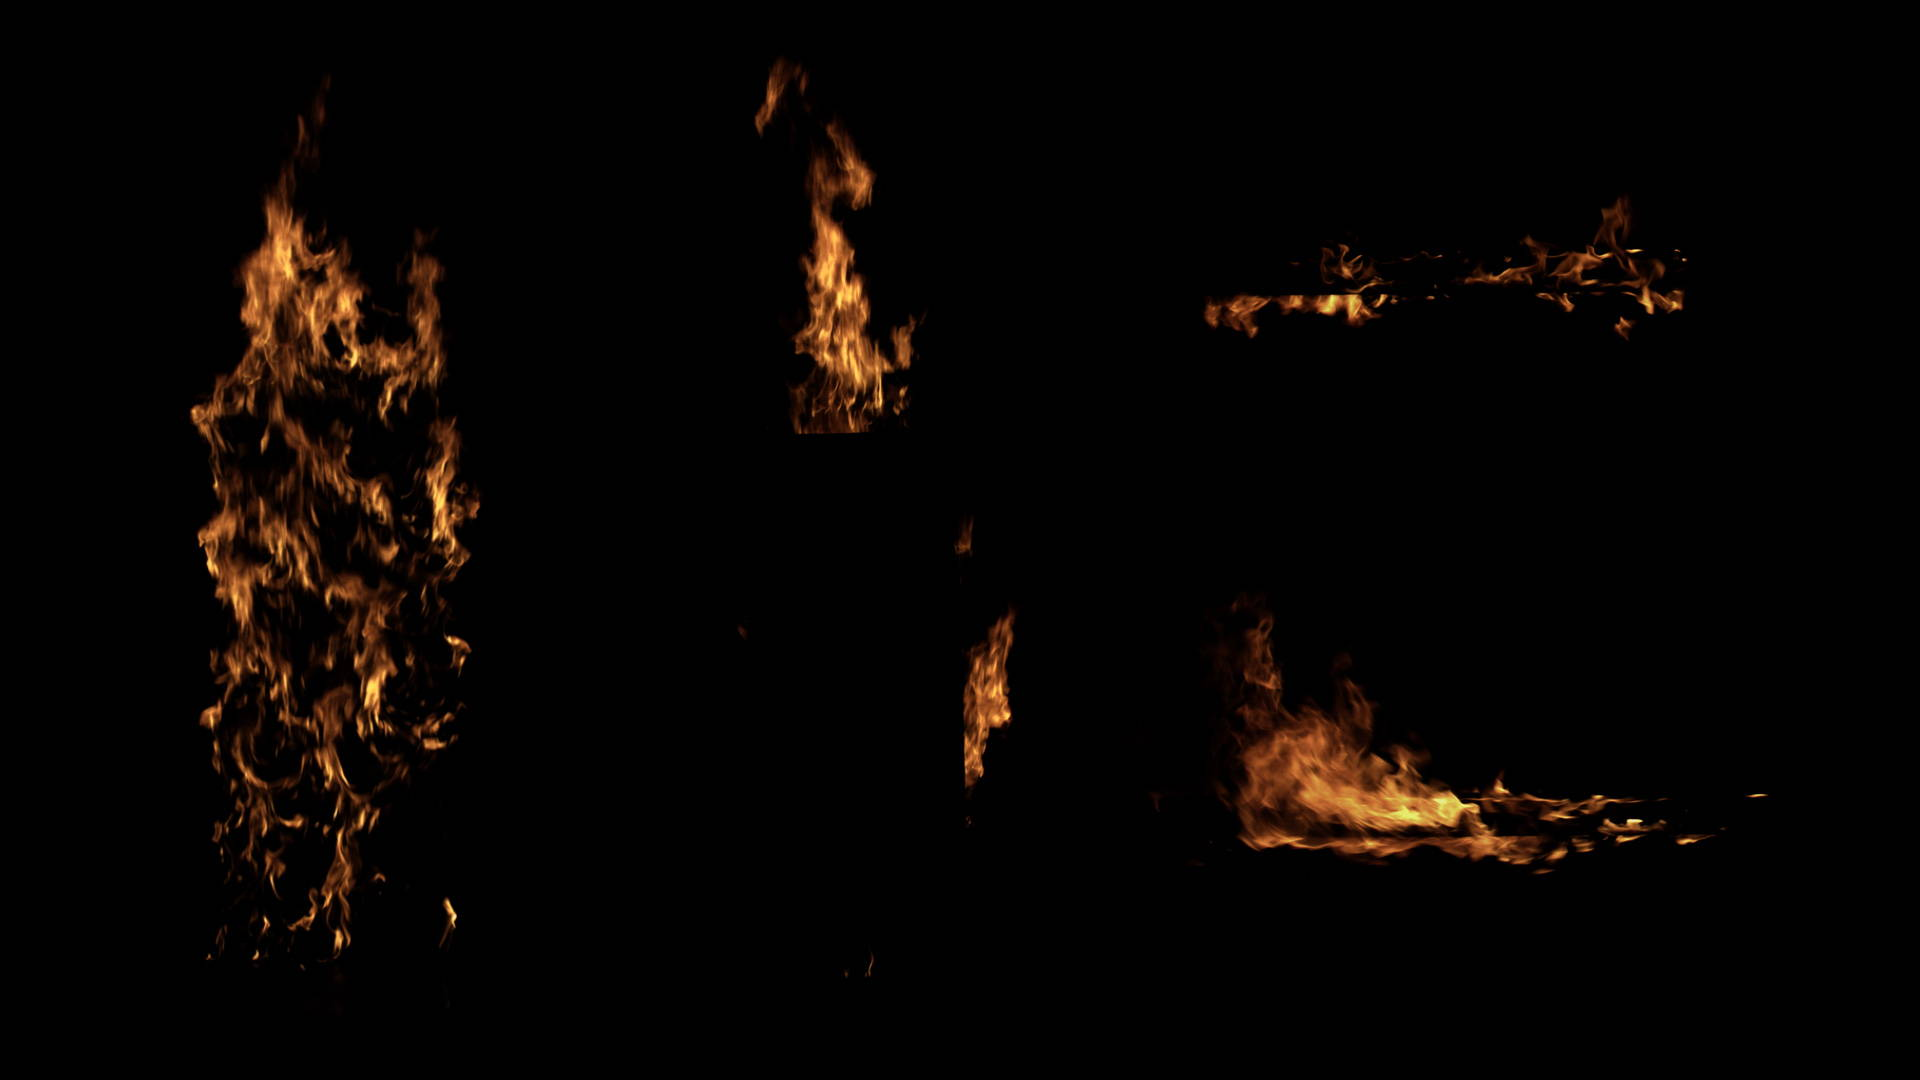 Structure Fire for VFX including Walls & Ceiling Fire elements